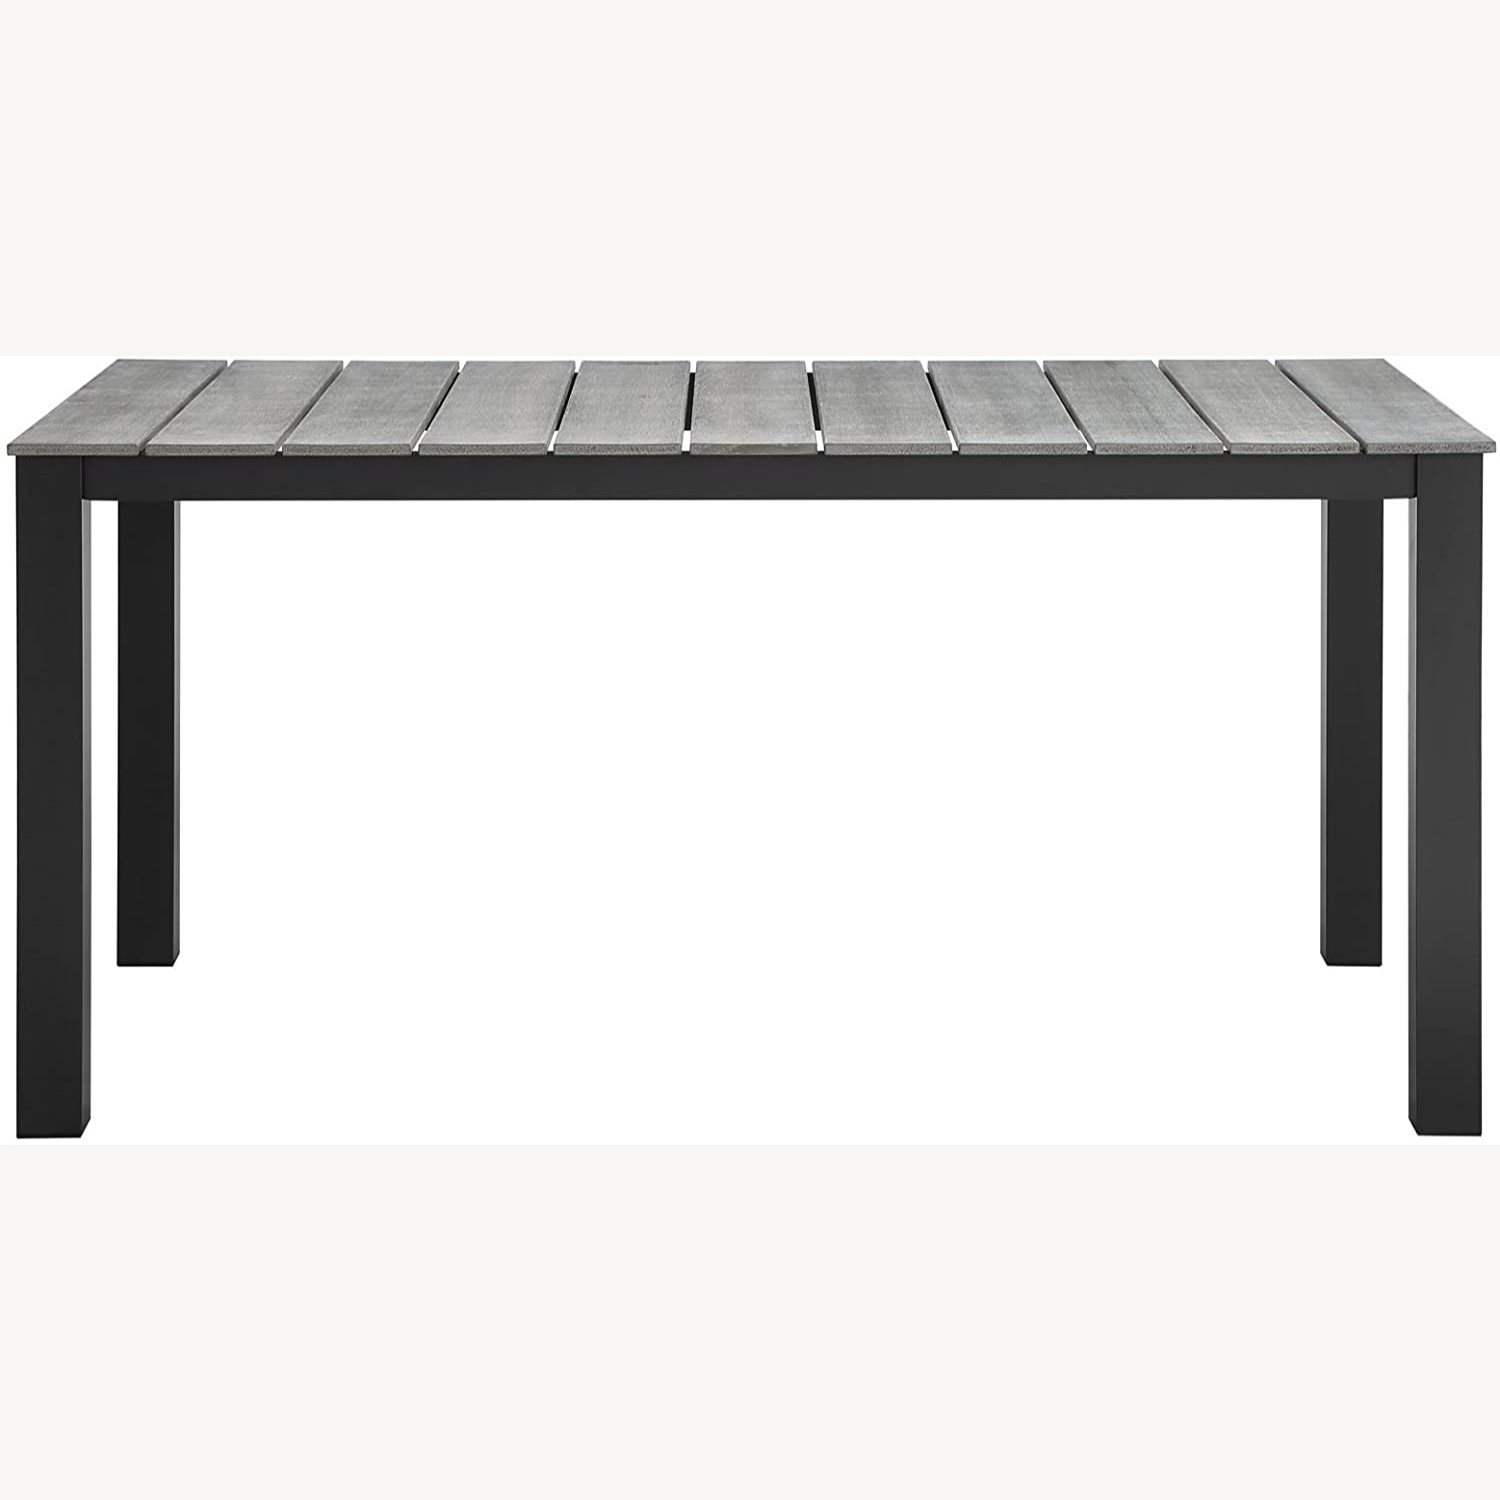 Modern 7-Piece Dining Set In Gray Frame Finish - image-5